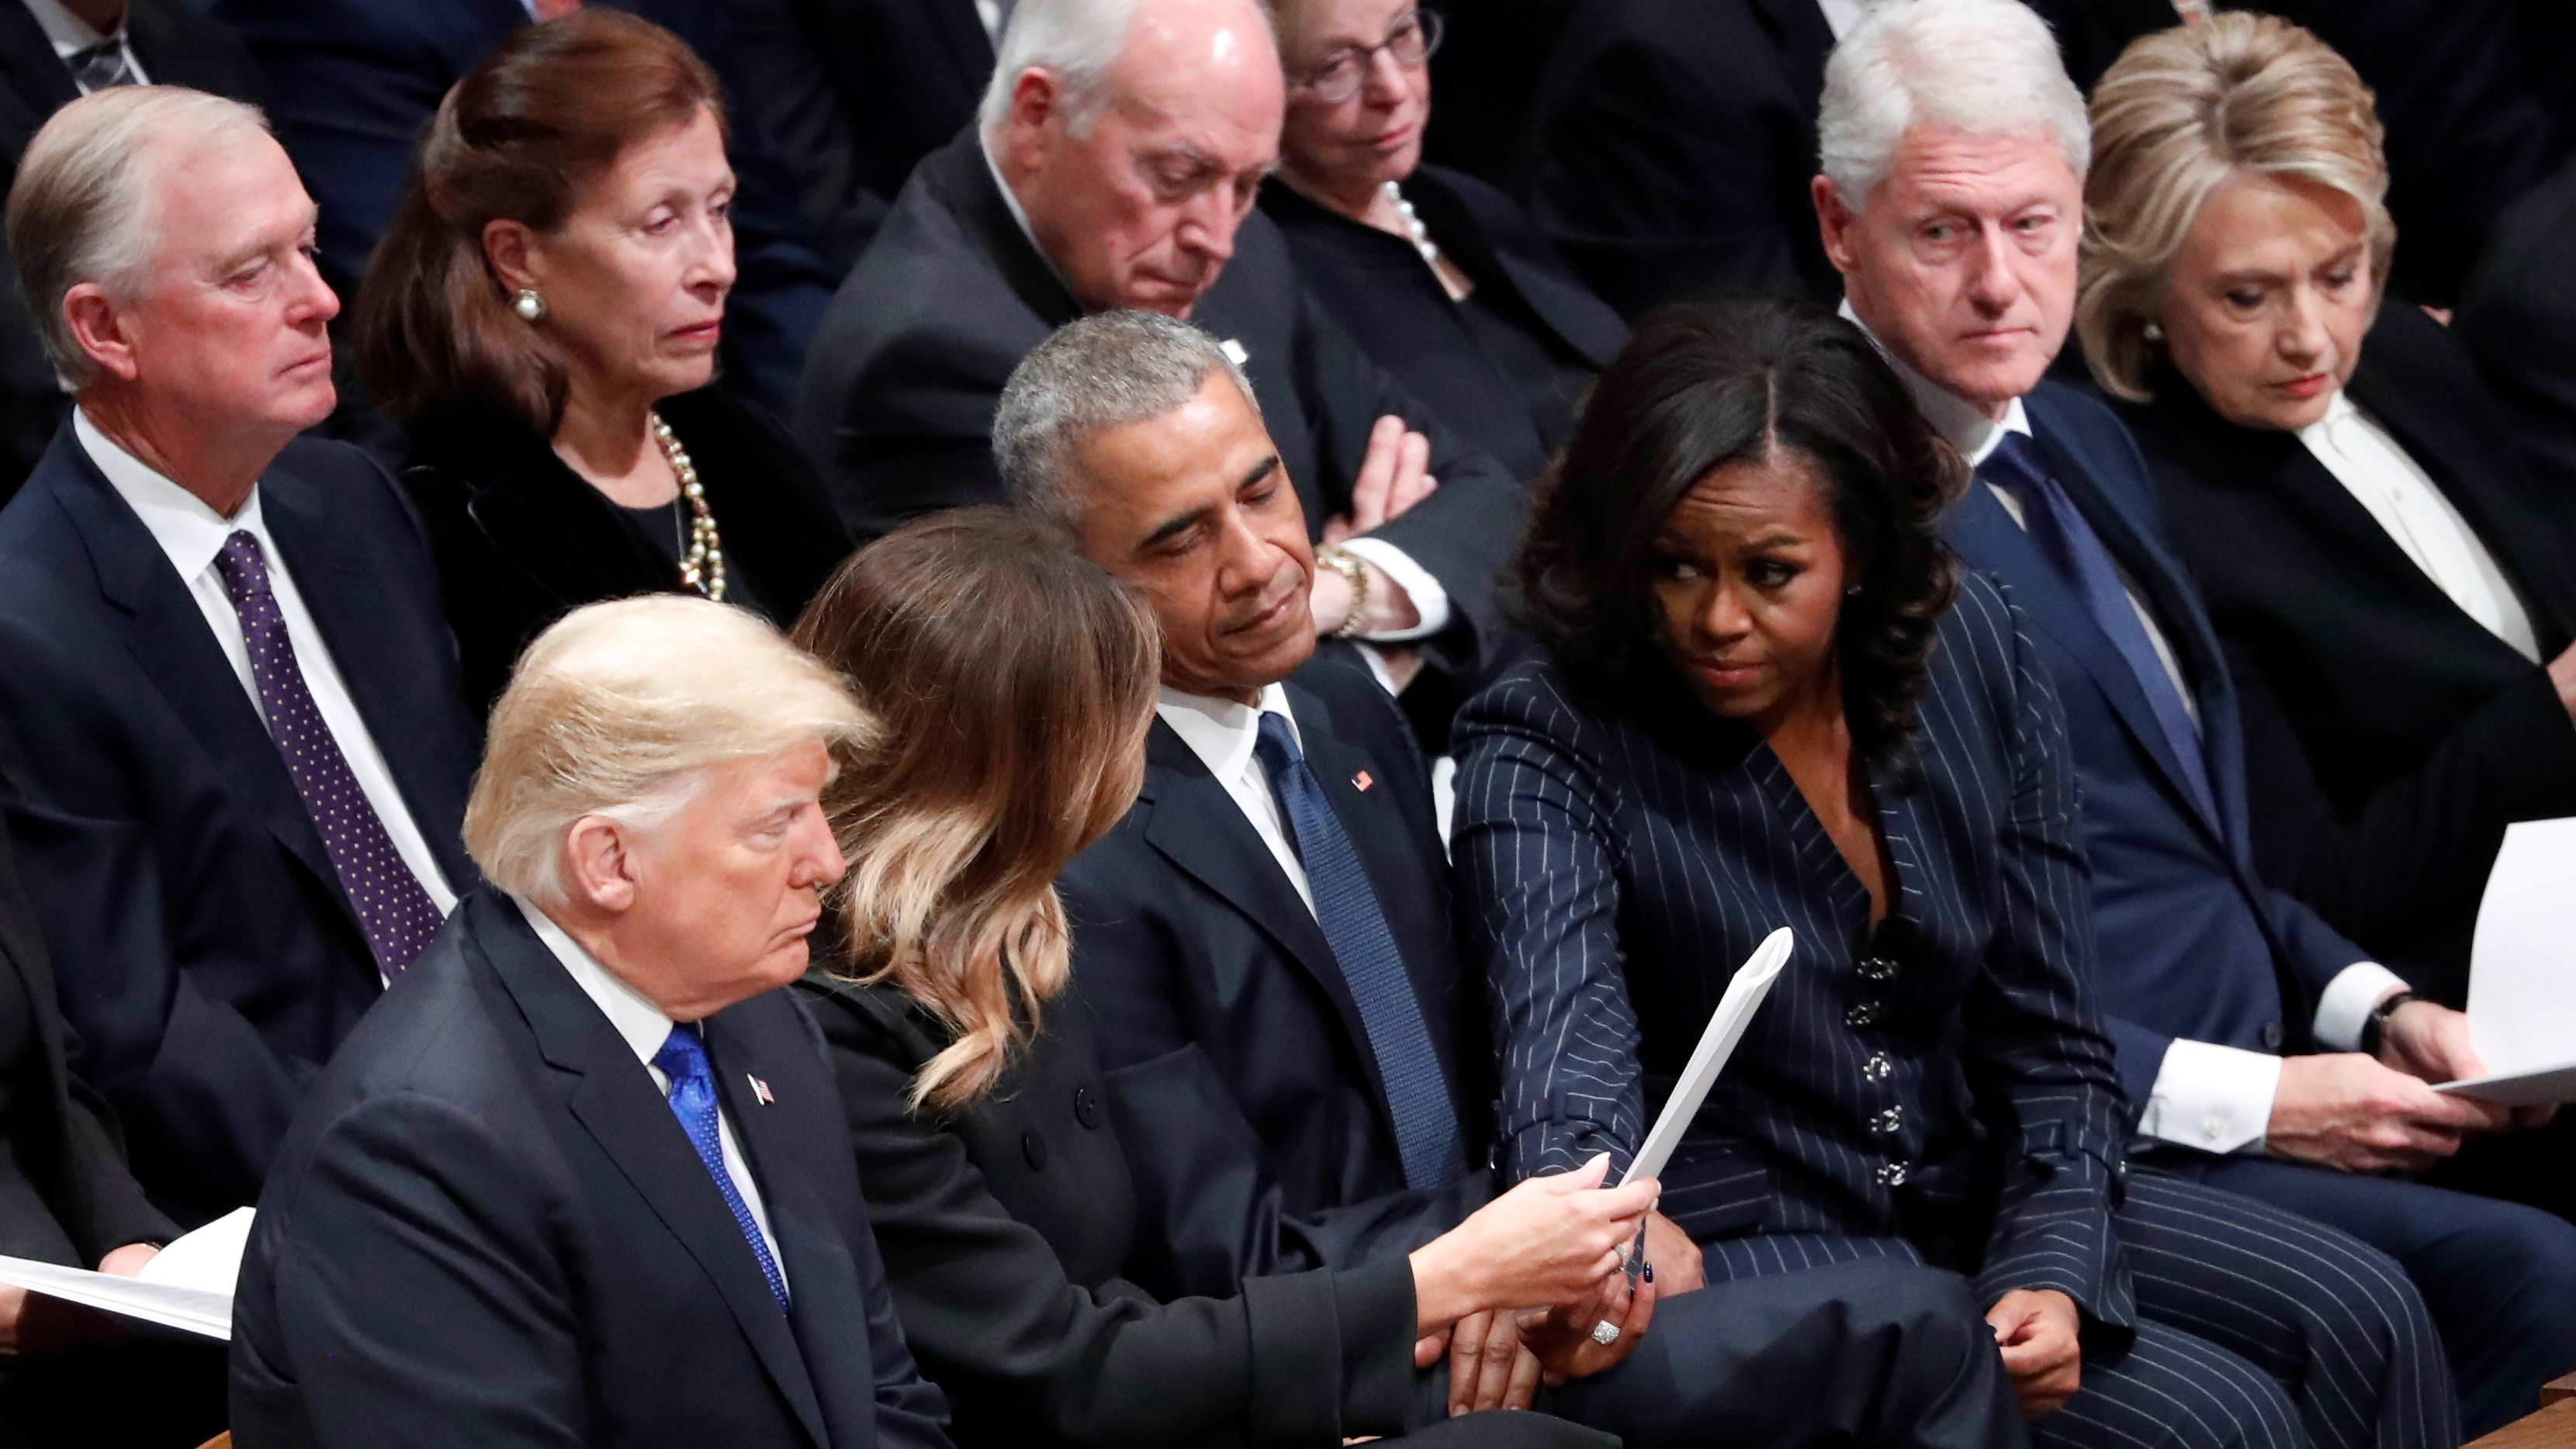 Michelle Obama demonstrating principles in action.